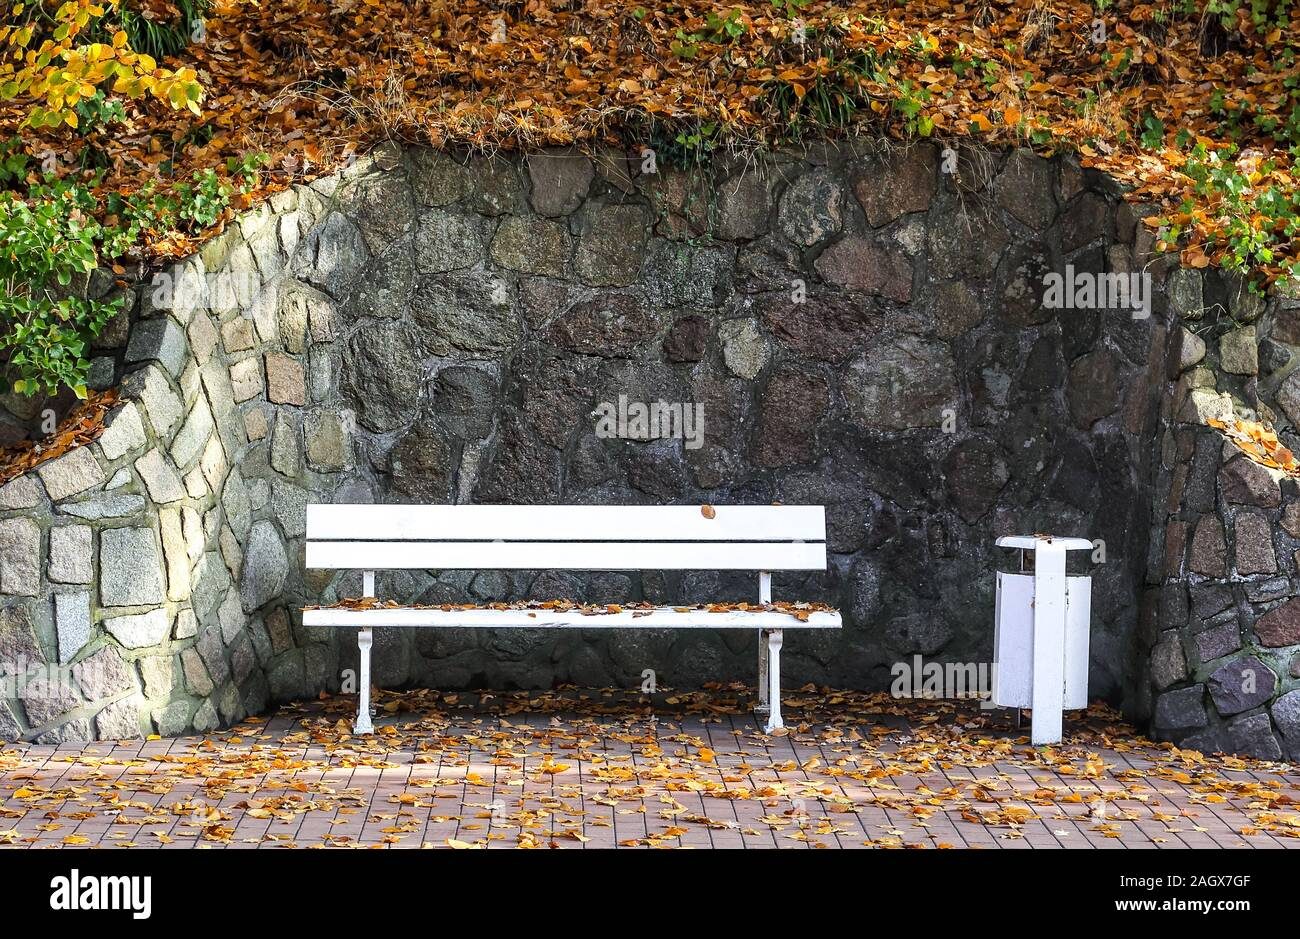 A nice place to rest or just to talk to other people. Stock Photo